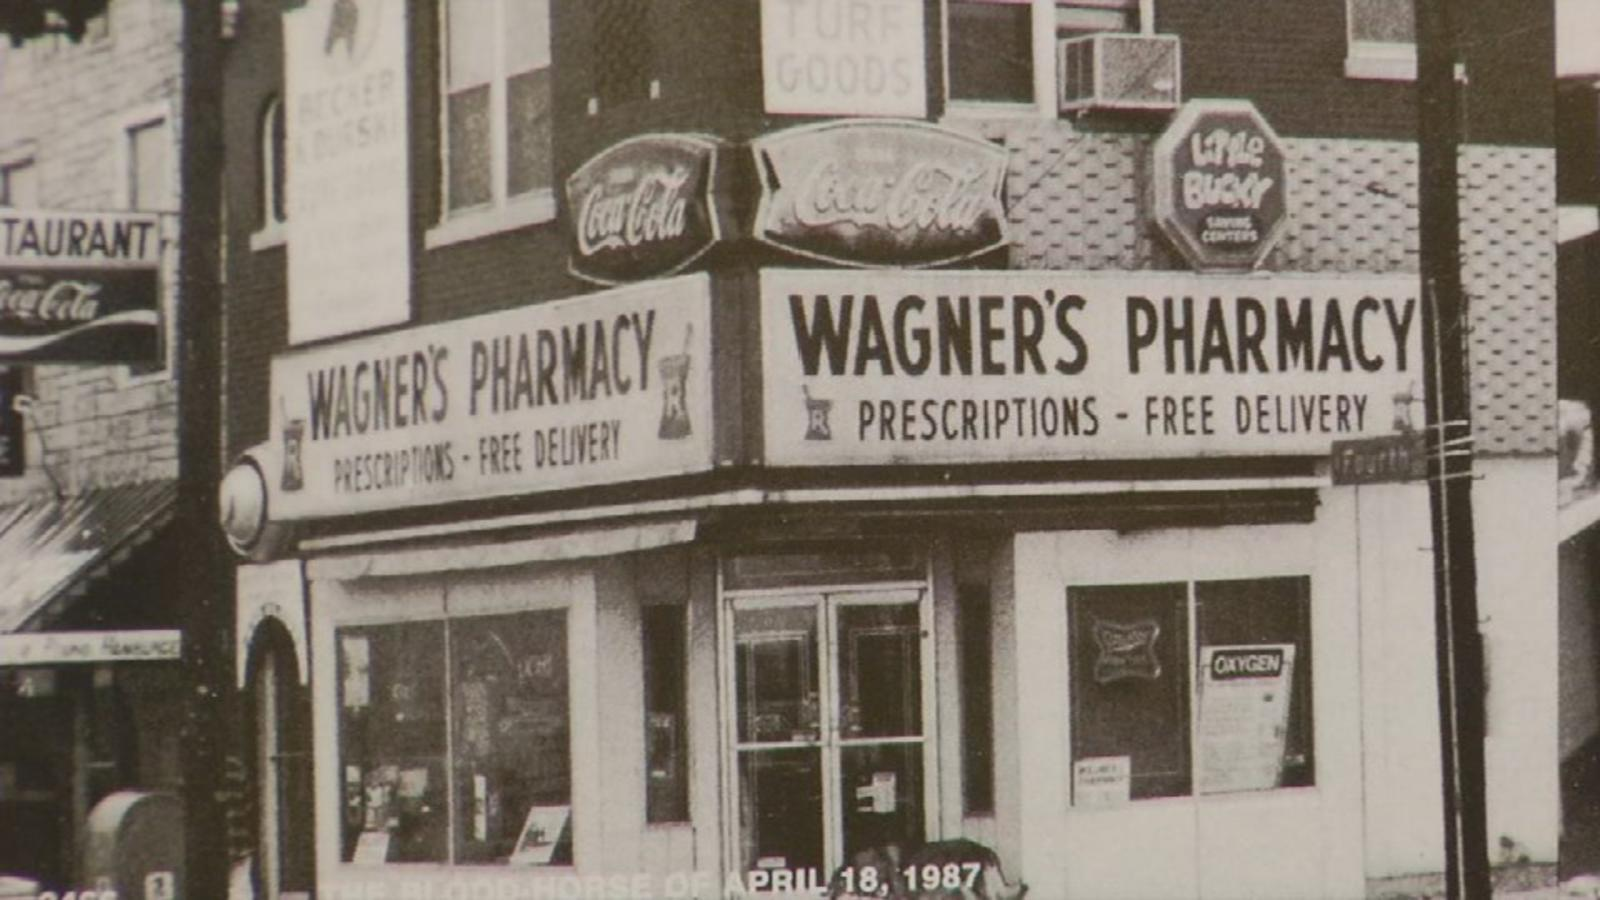 Wagner's Pharmacy and the Kentucky Derby Museum in Louisville